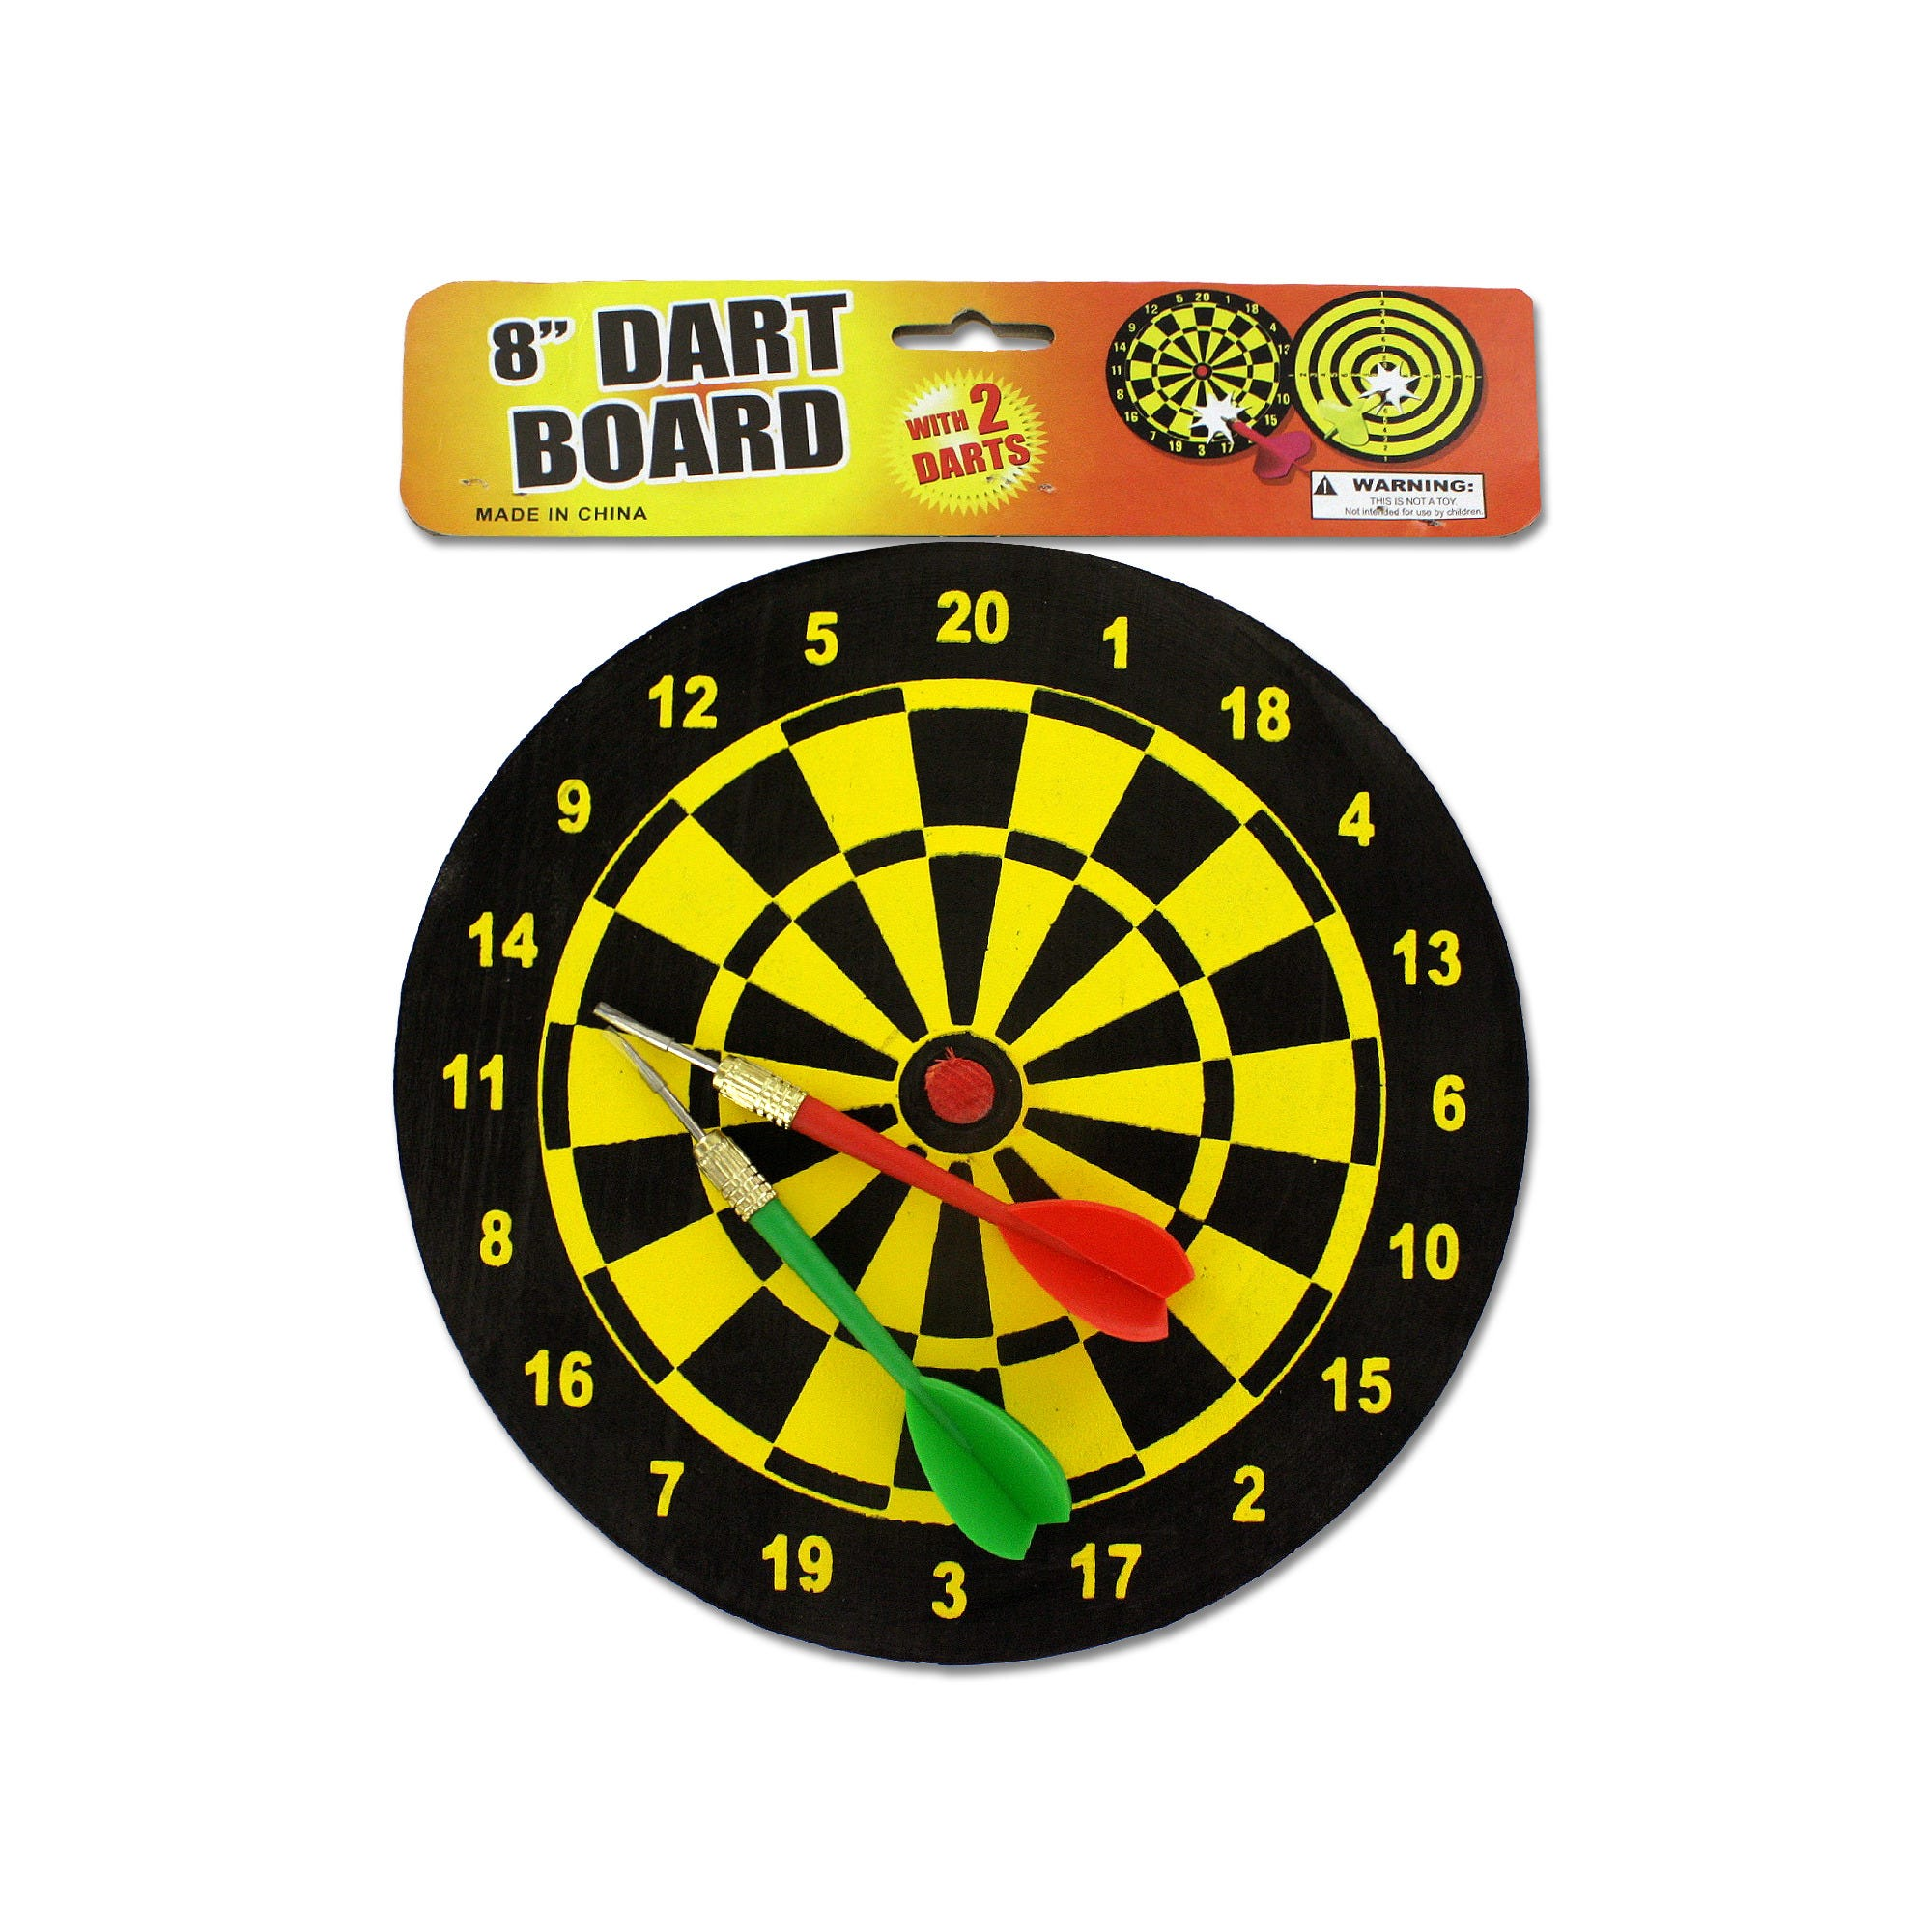 DART-board-with-DARTS